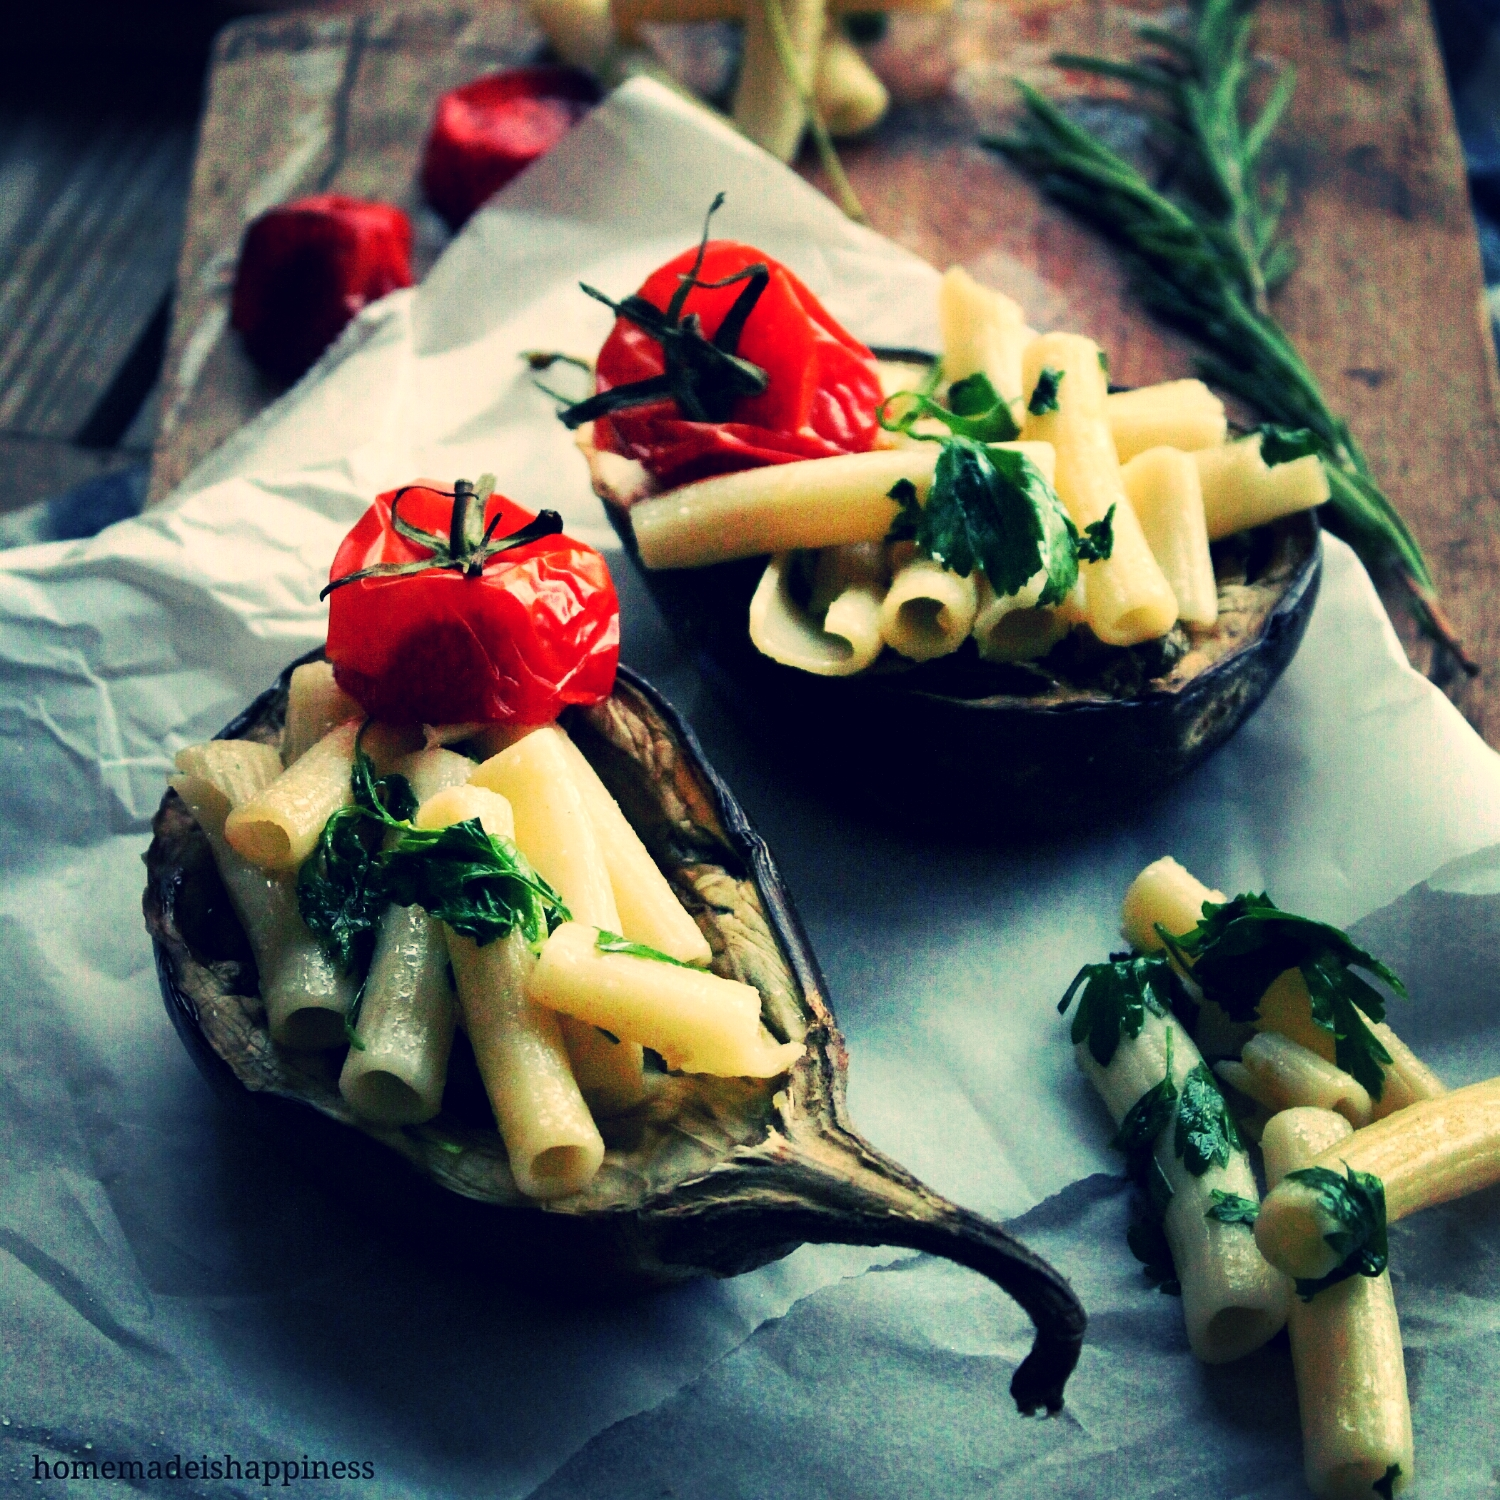 Love Mediterranean dinner with pasta & a glass of wine... A healthy choice with stuffed aubergine...